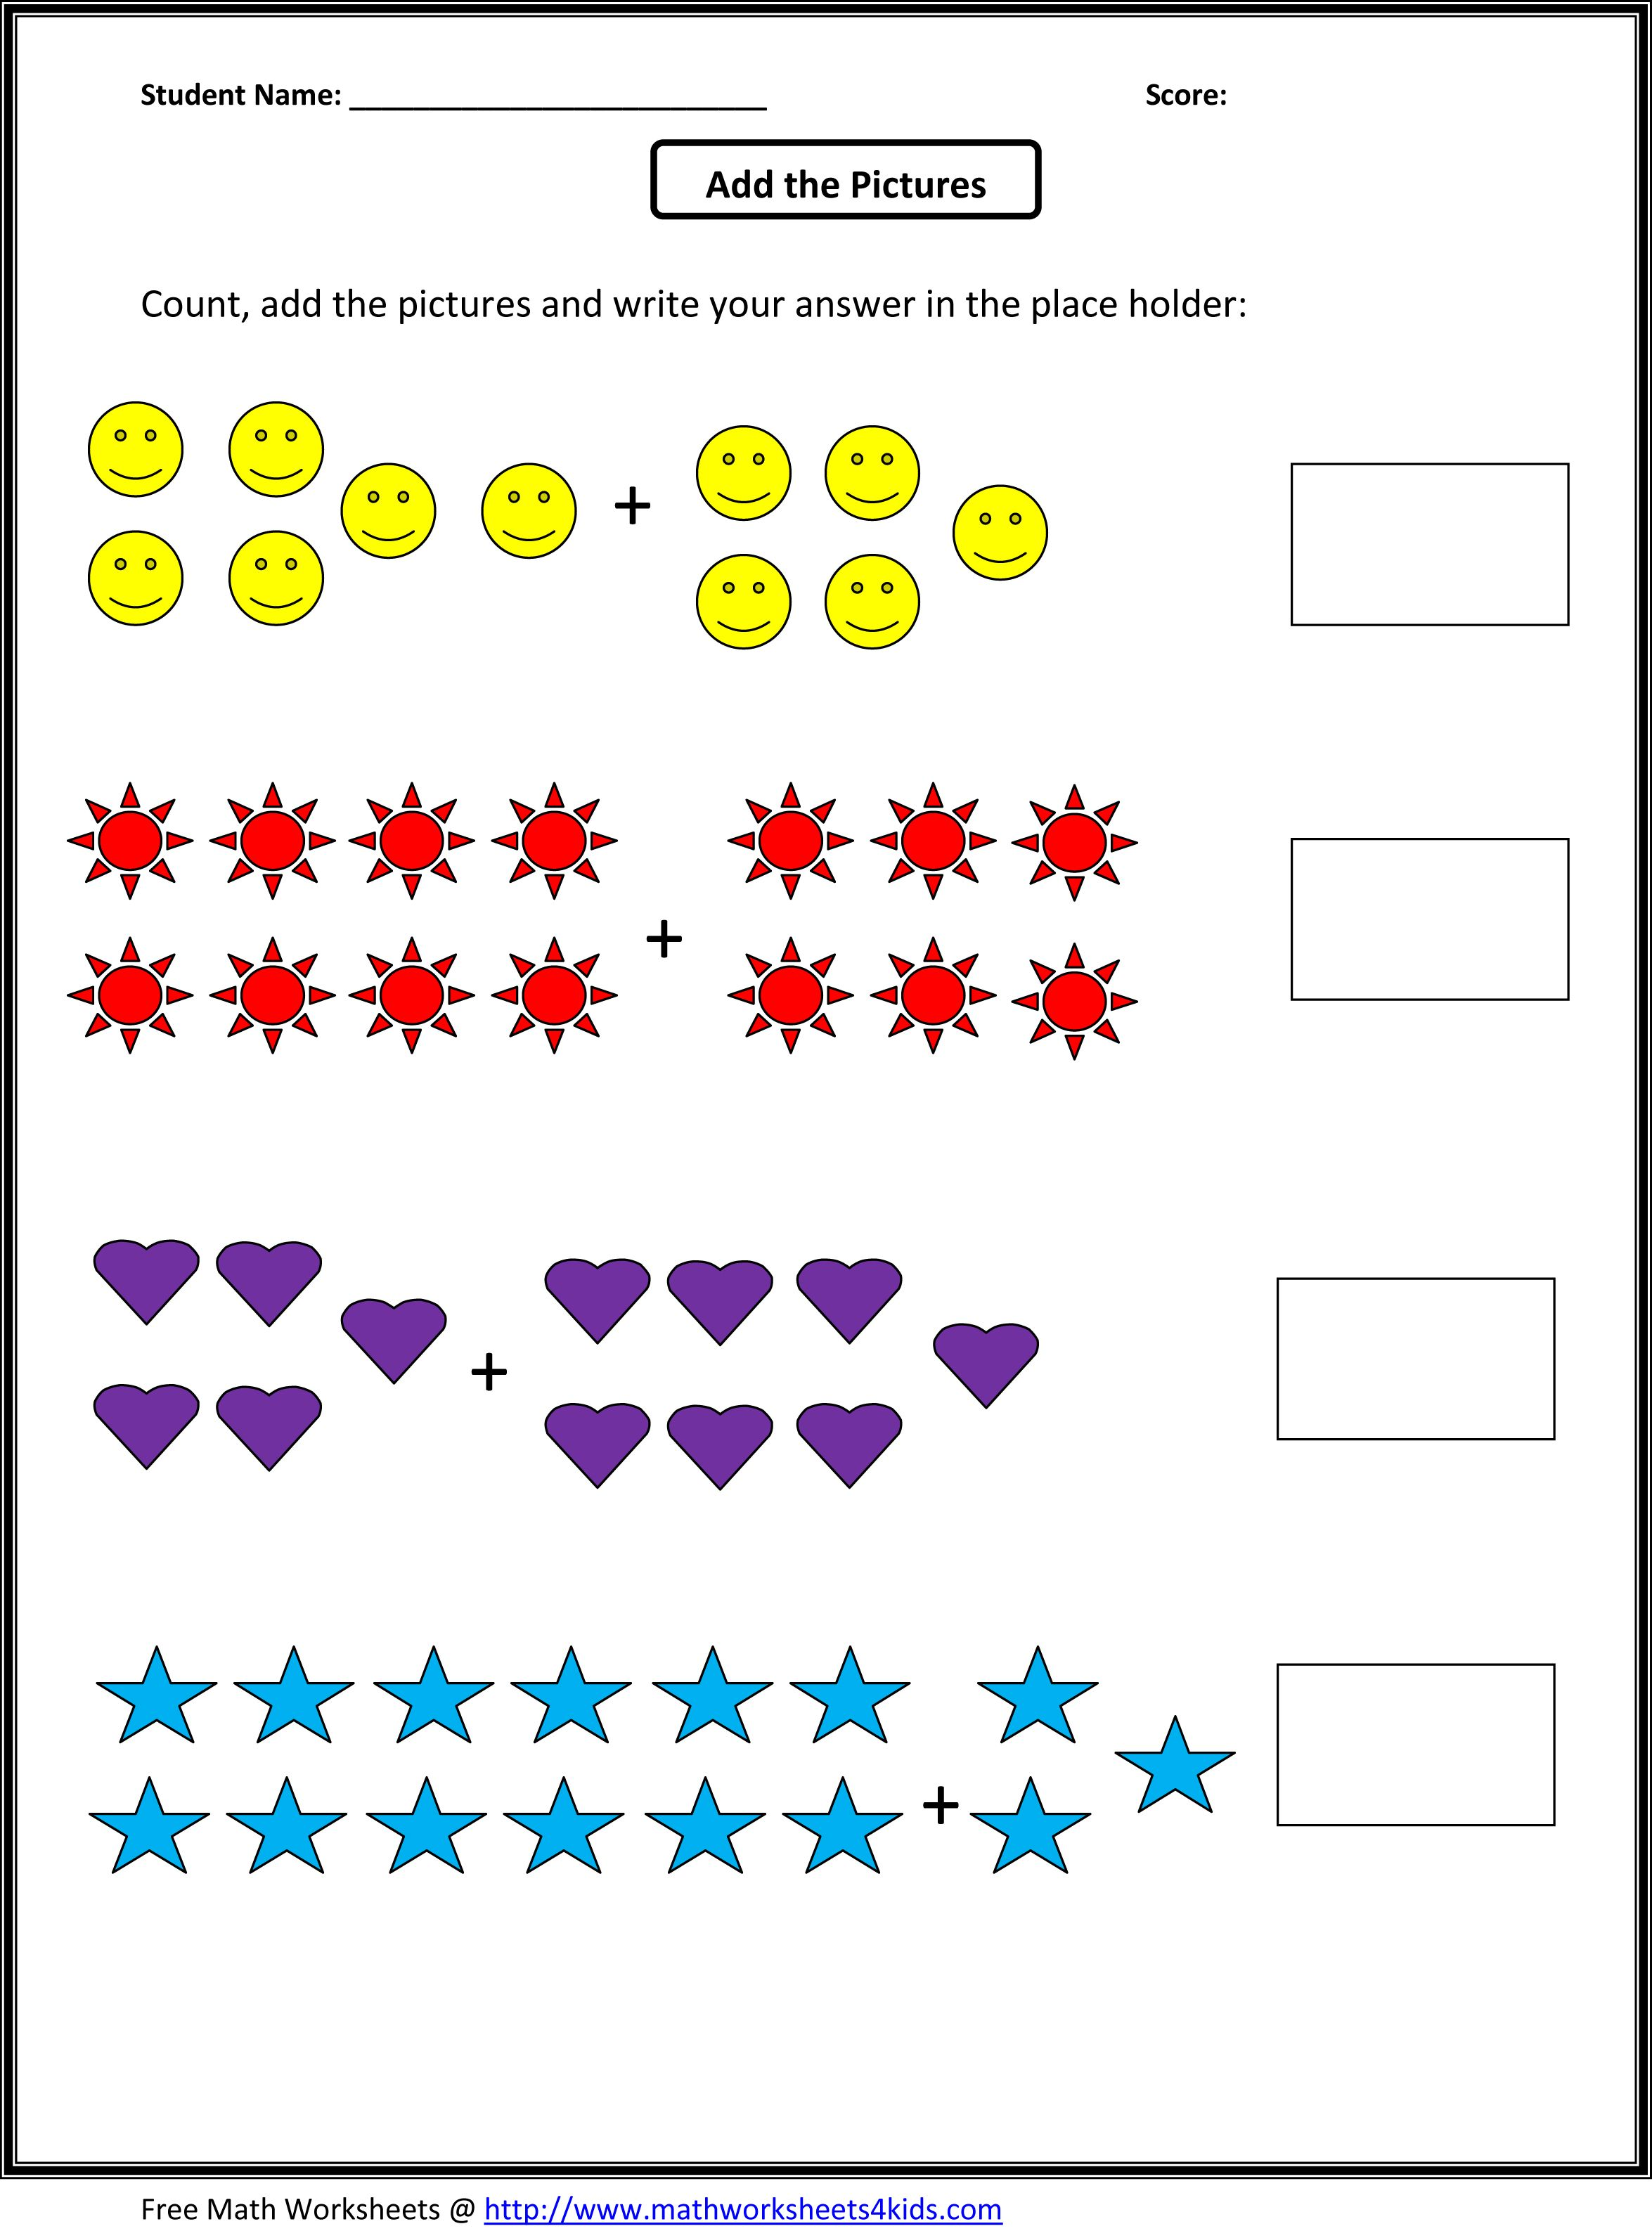 grade 1 addition math worksheets – Easy Math Worksheet